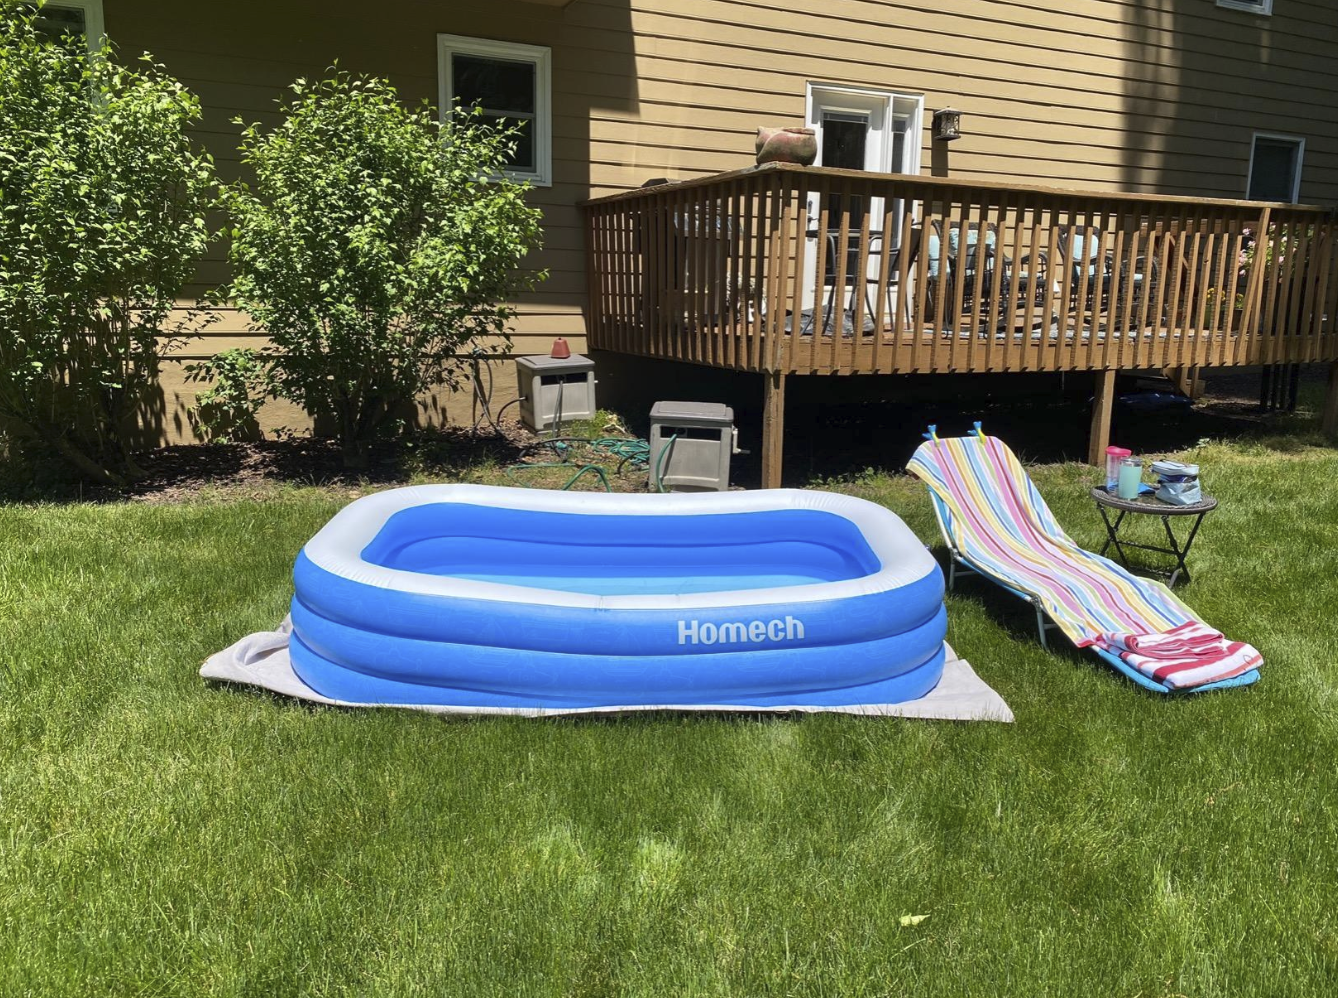 the blow-up pool has a rectangle shape and is sitting in a grassy yard beside a lounging chair and small table with drinks on it